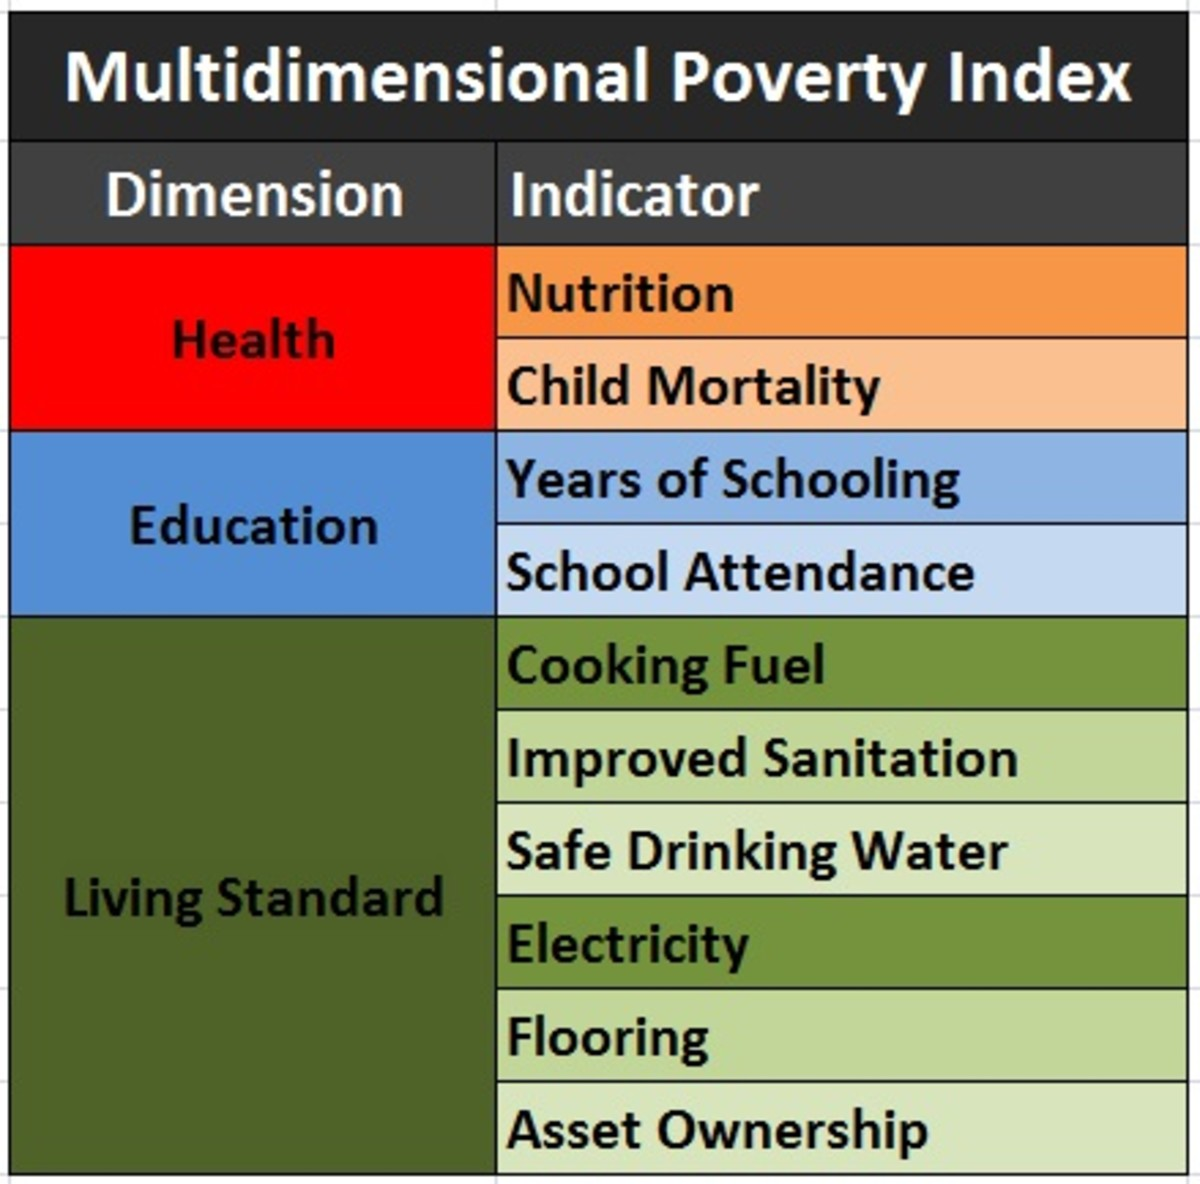 The MPI has 10 indicators of three dimensions.